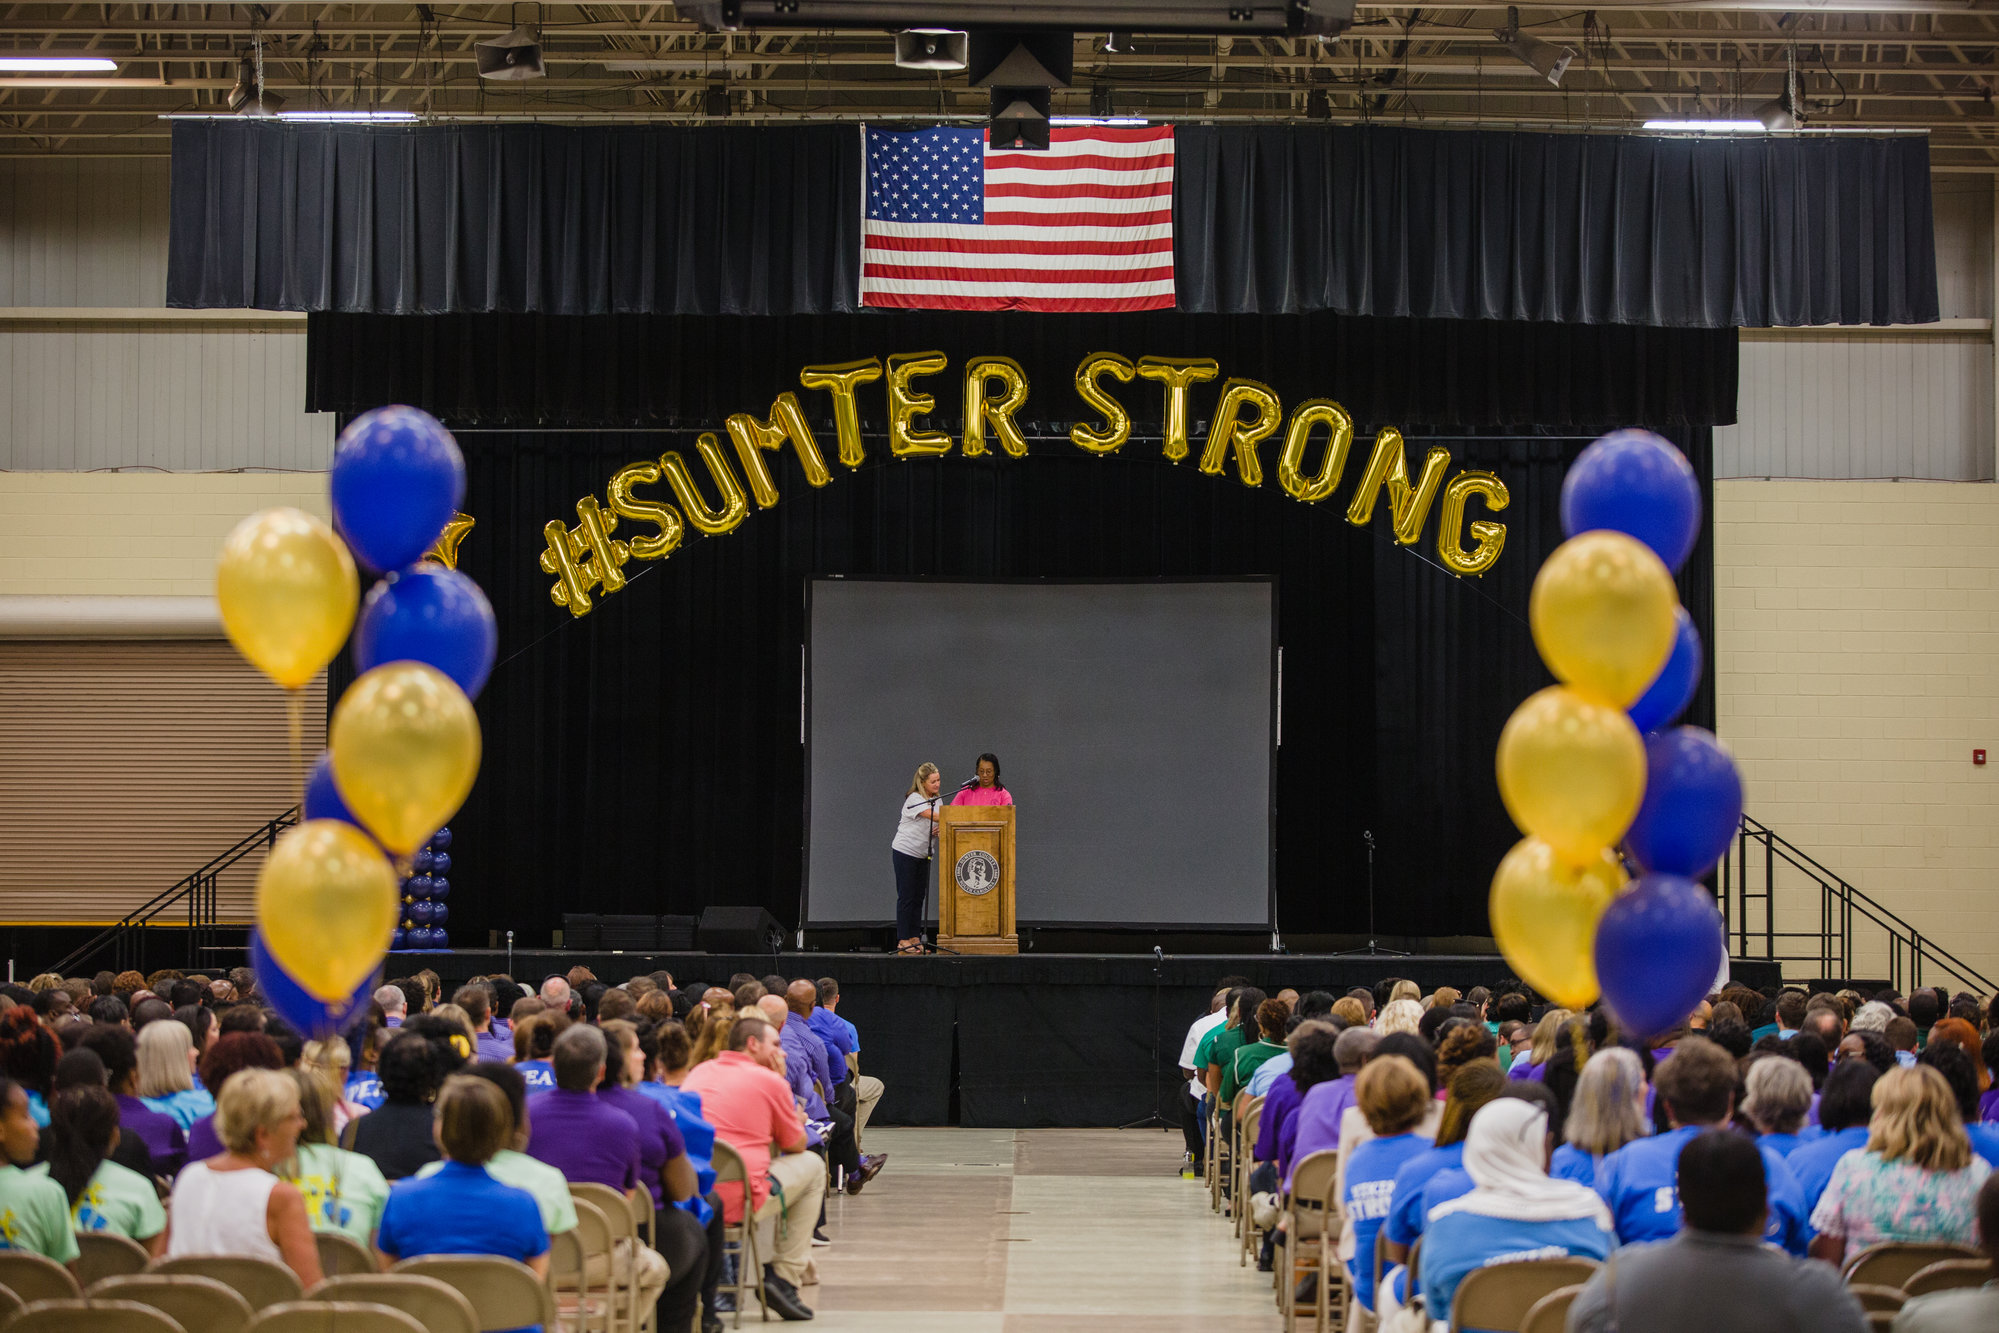 Sumter School District staff celebrates #SumterStrong.